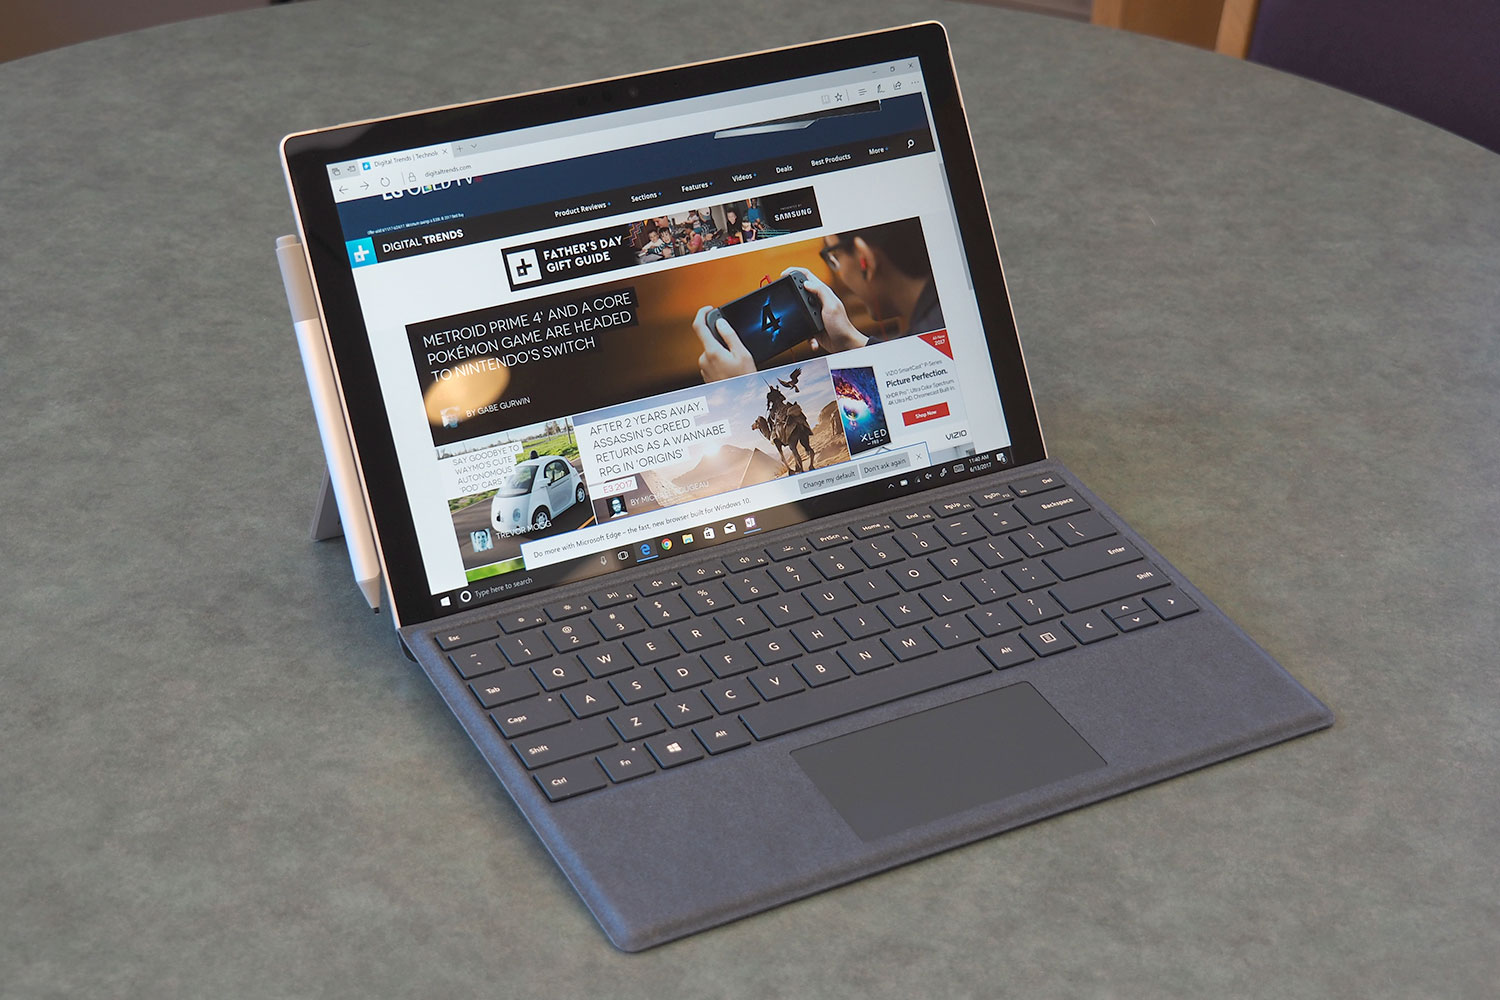 lenovo thinkpad x1 tablet versus the microsoft surface pro